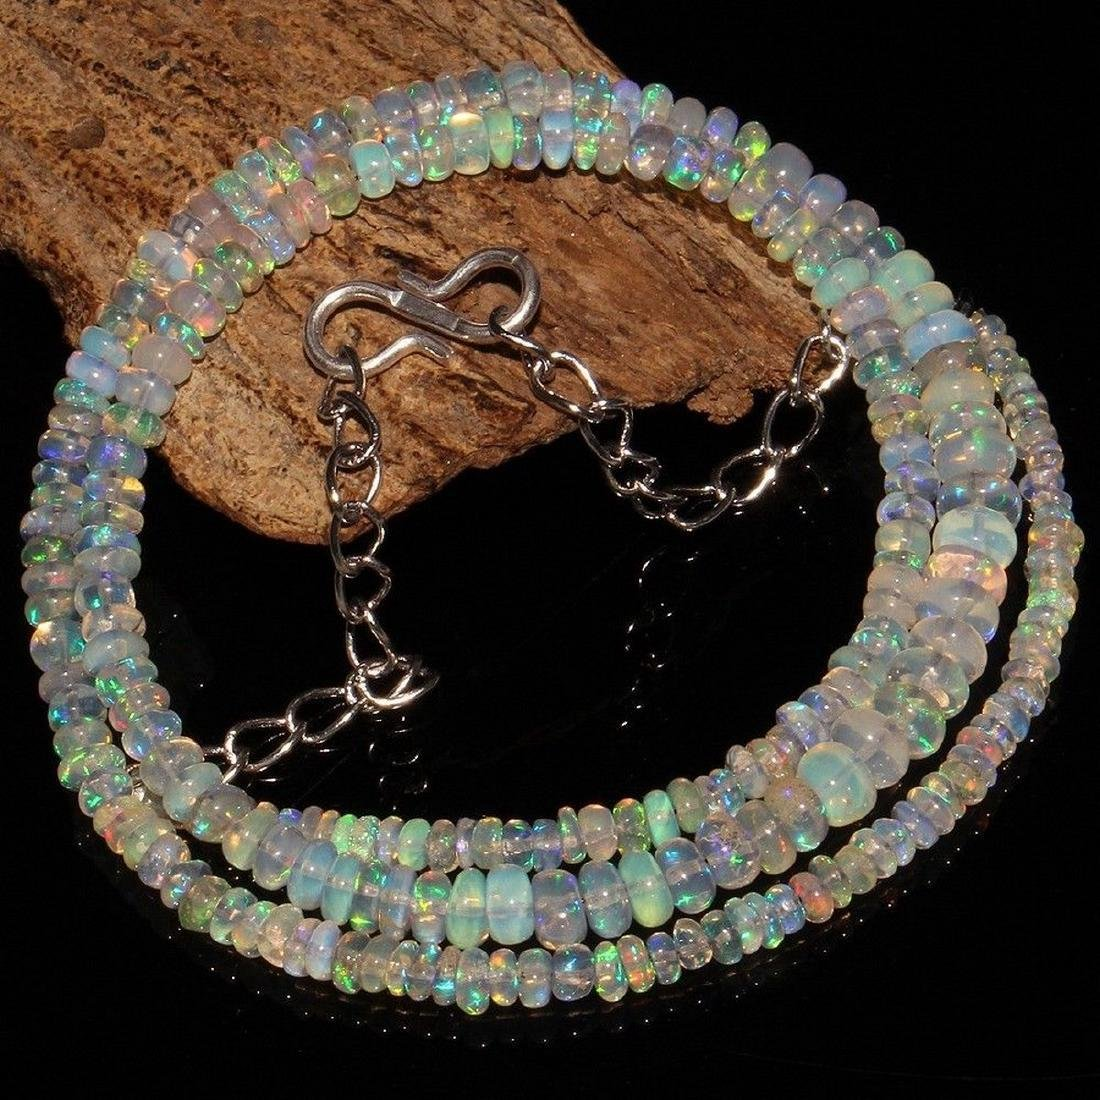 Sterling Silver Ethiopian Opal Bead Necklace, 34ctw - 2